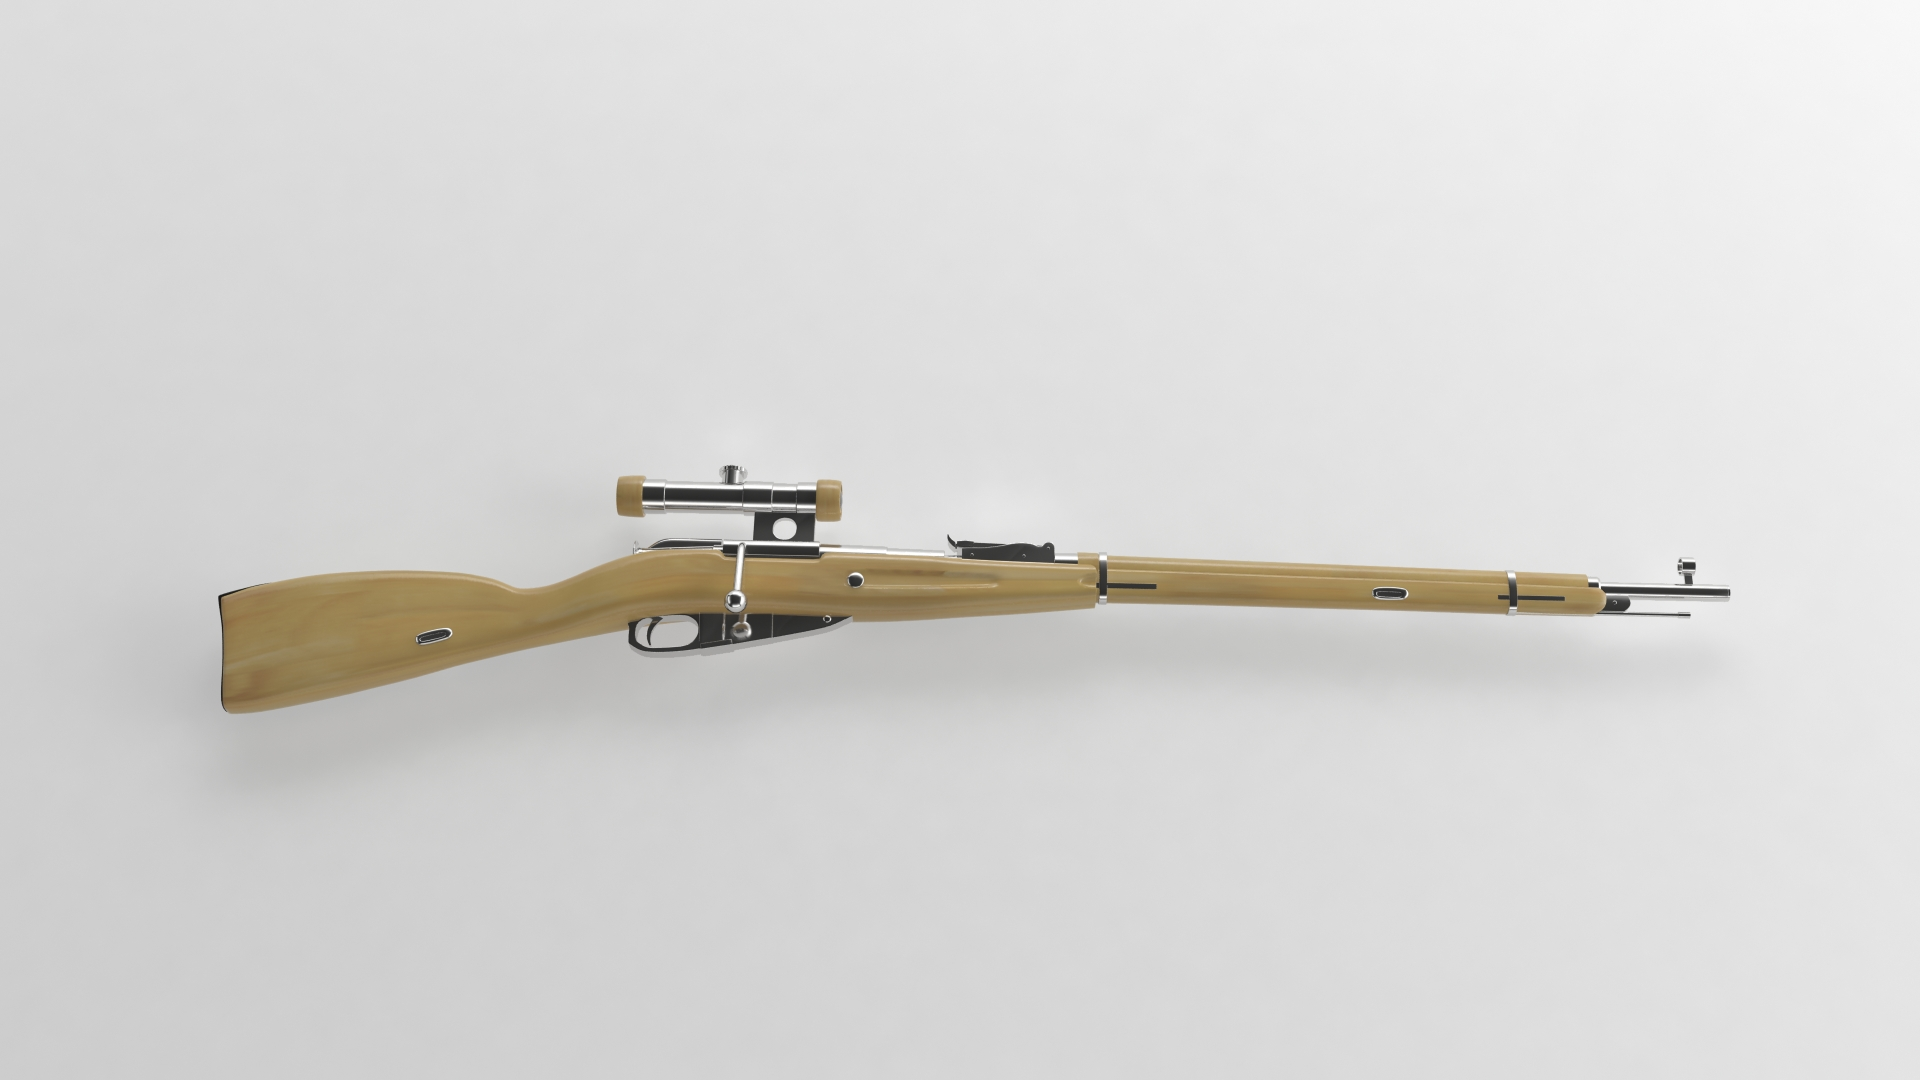 Mosin Nagant Sniper Rifle